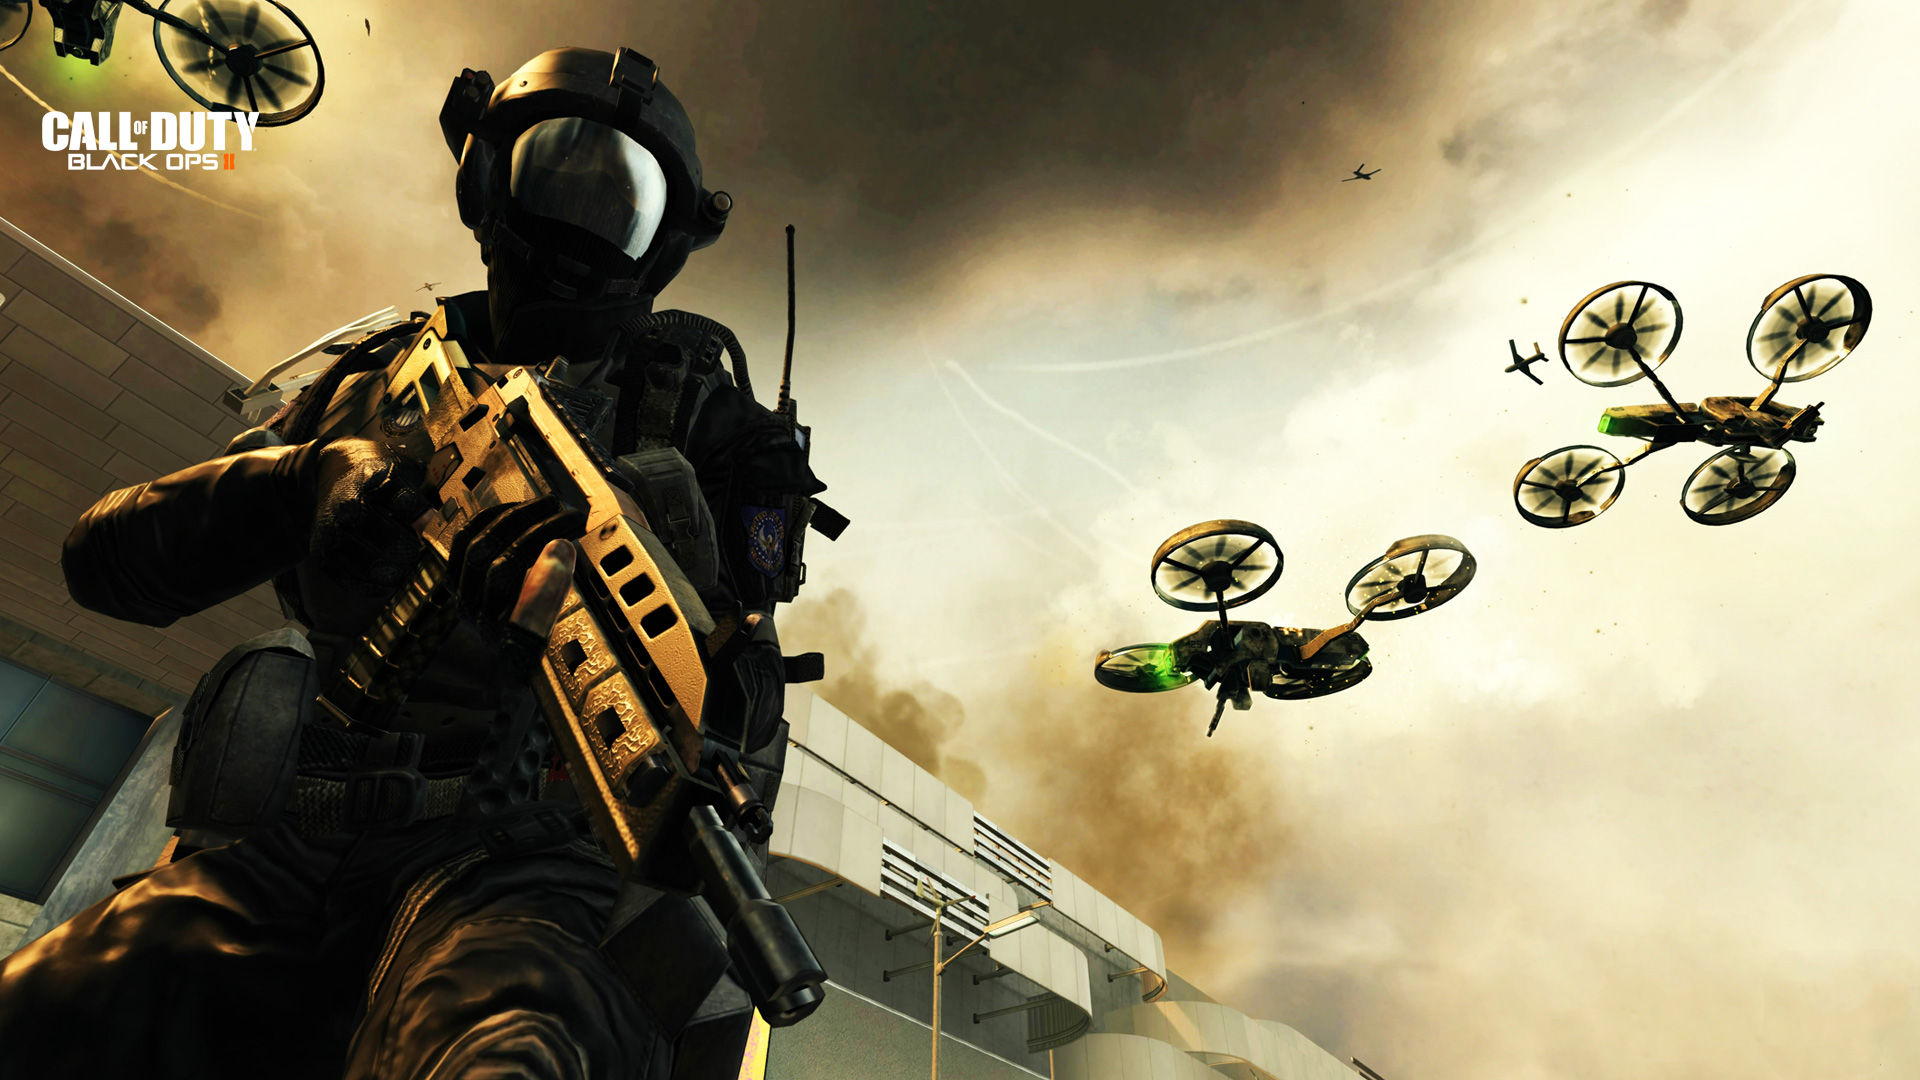 Call of duty black ops 2 wallpaper 17 voltagebd Image collections